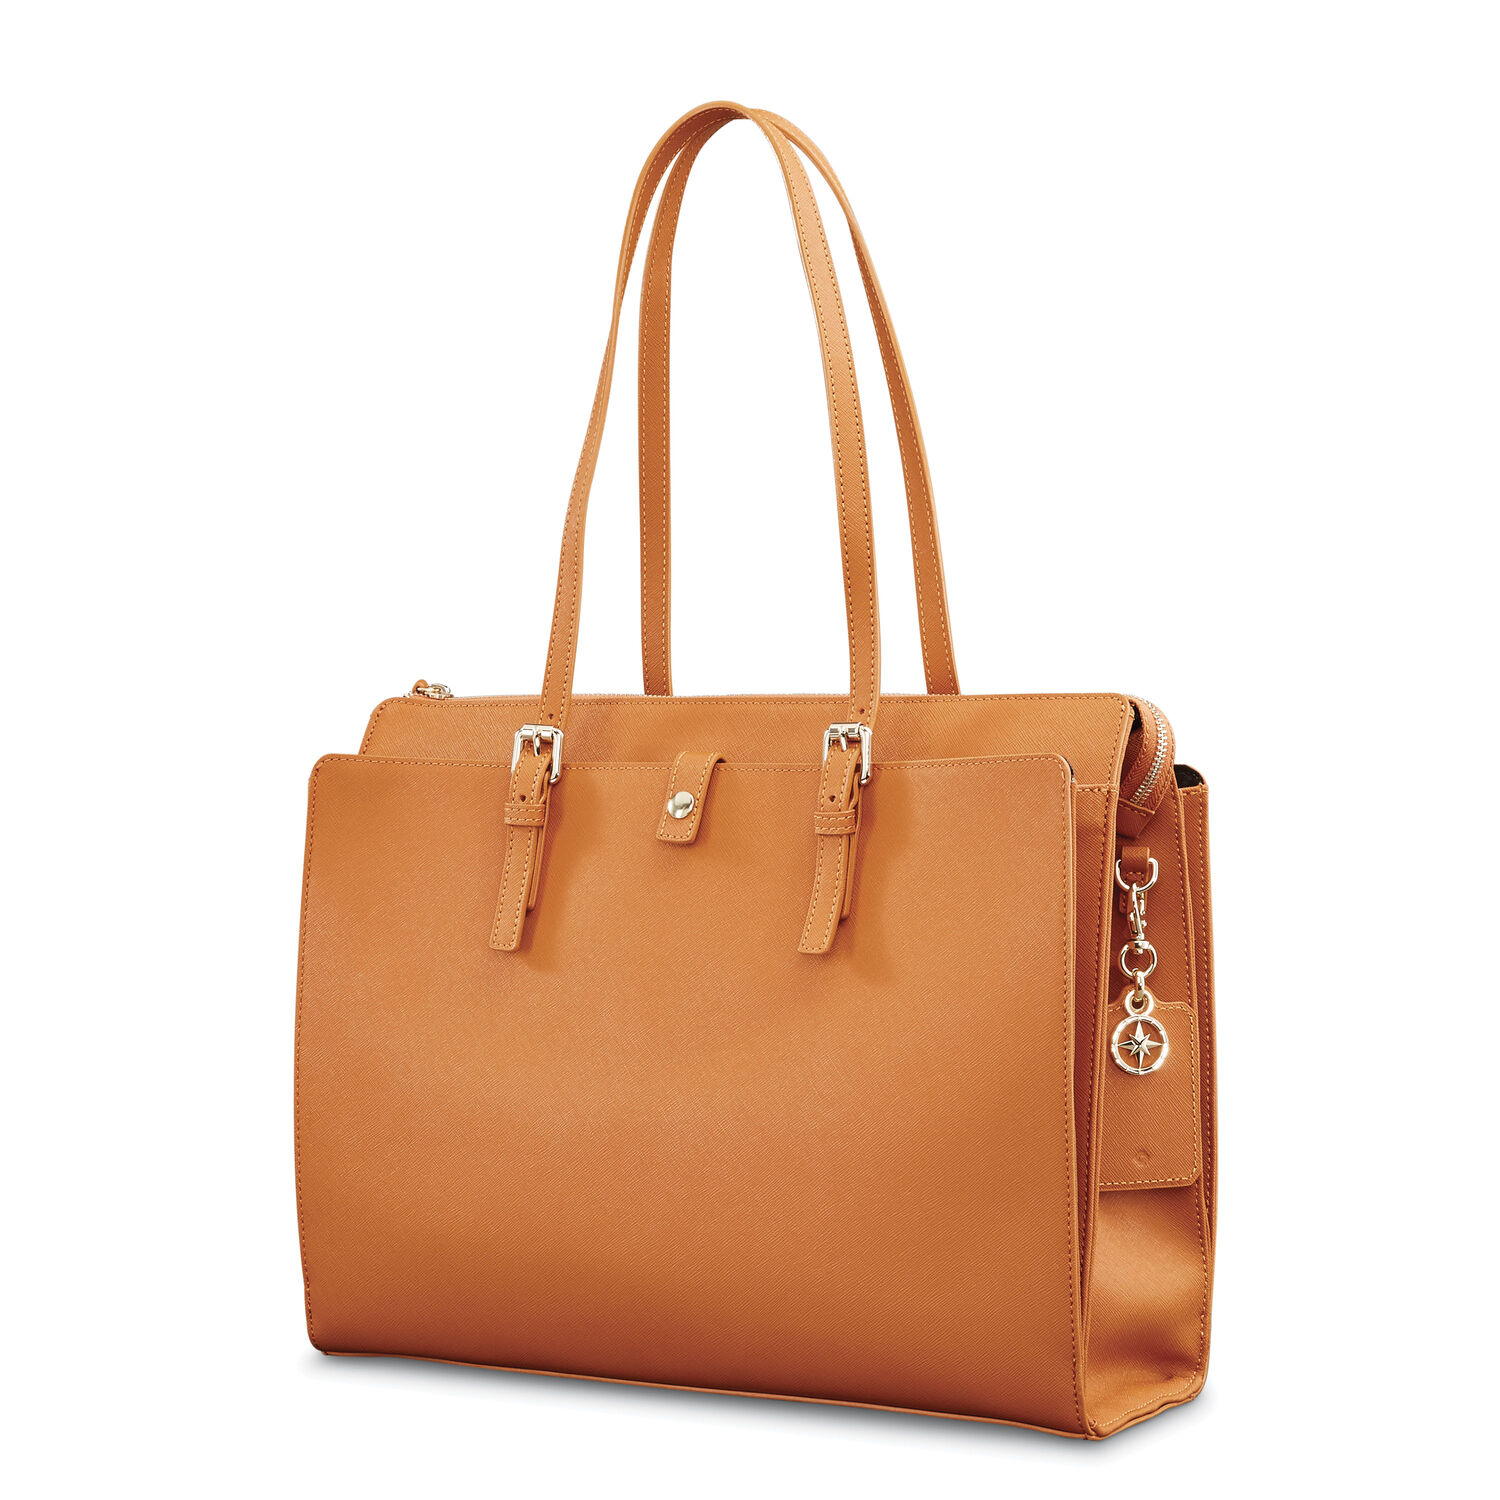 Samsonite Las Leather N S Tote In The Color Cognac